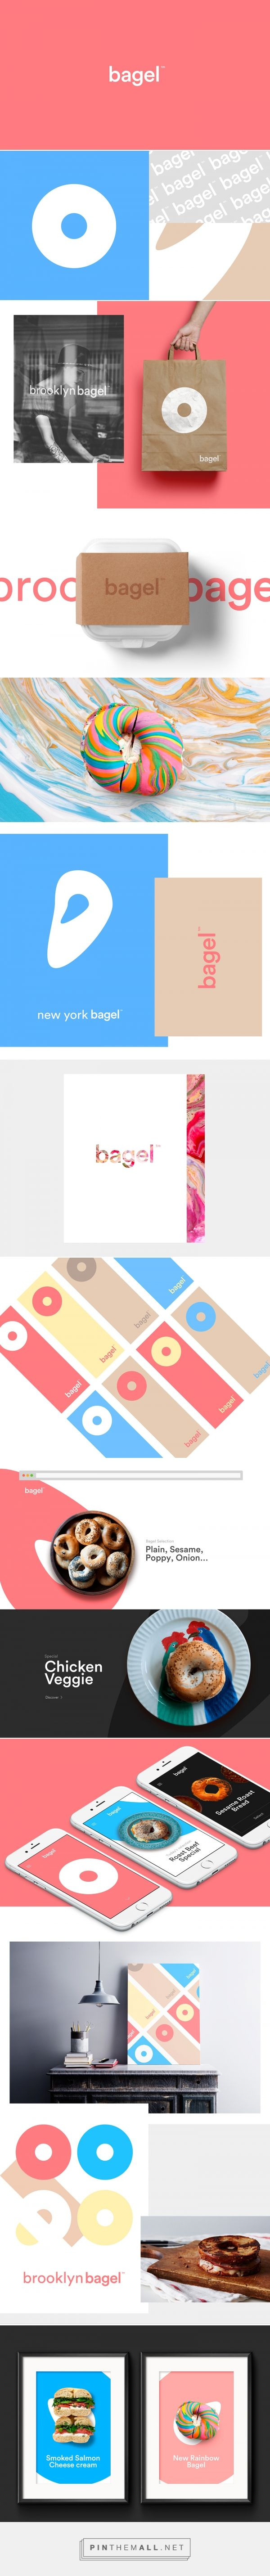 bagel™ - visual identity on Behance... - a grouped images picture - Pin Them All